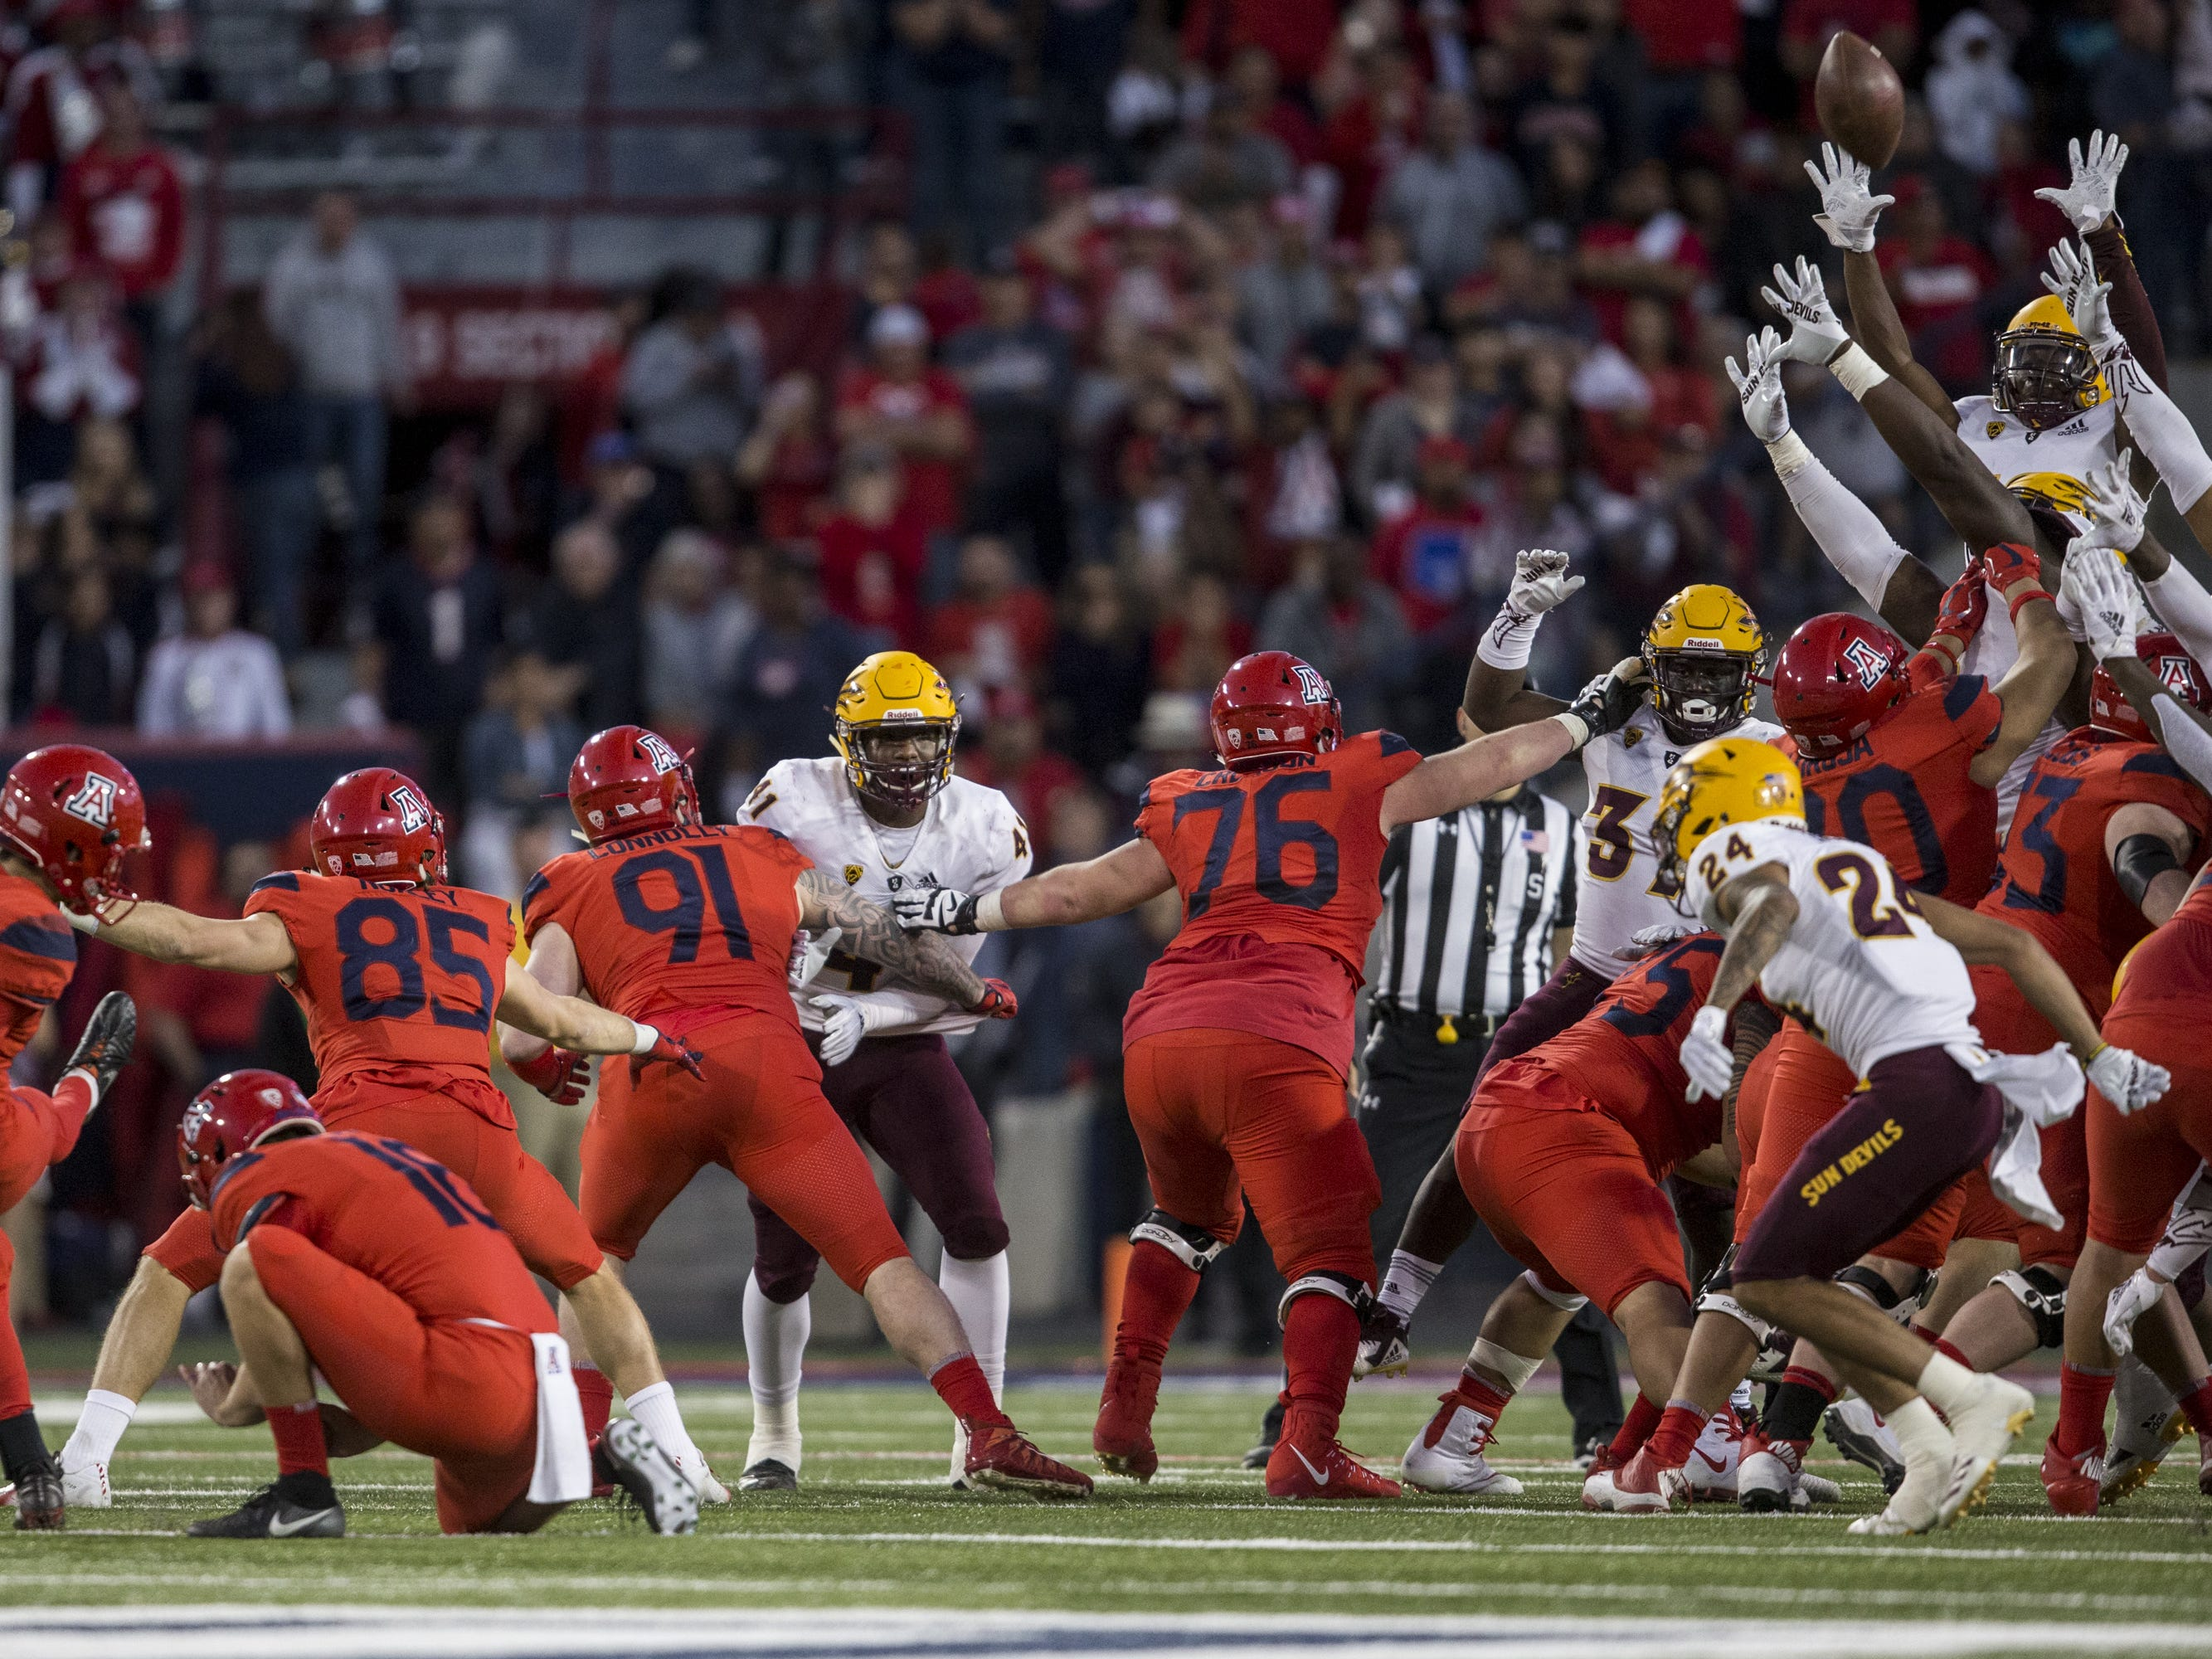 Arizona's Josh Pollack misses a field goal against Arizona State during the second half of the Territorial Cup on Saturday, Nov. 24, 2018, at Arizona Stadium in Tucson, Ariz. Arizona State won, 41-40.